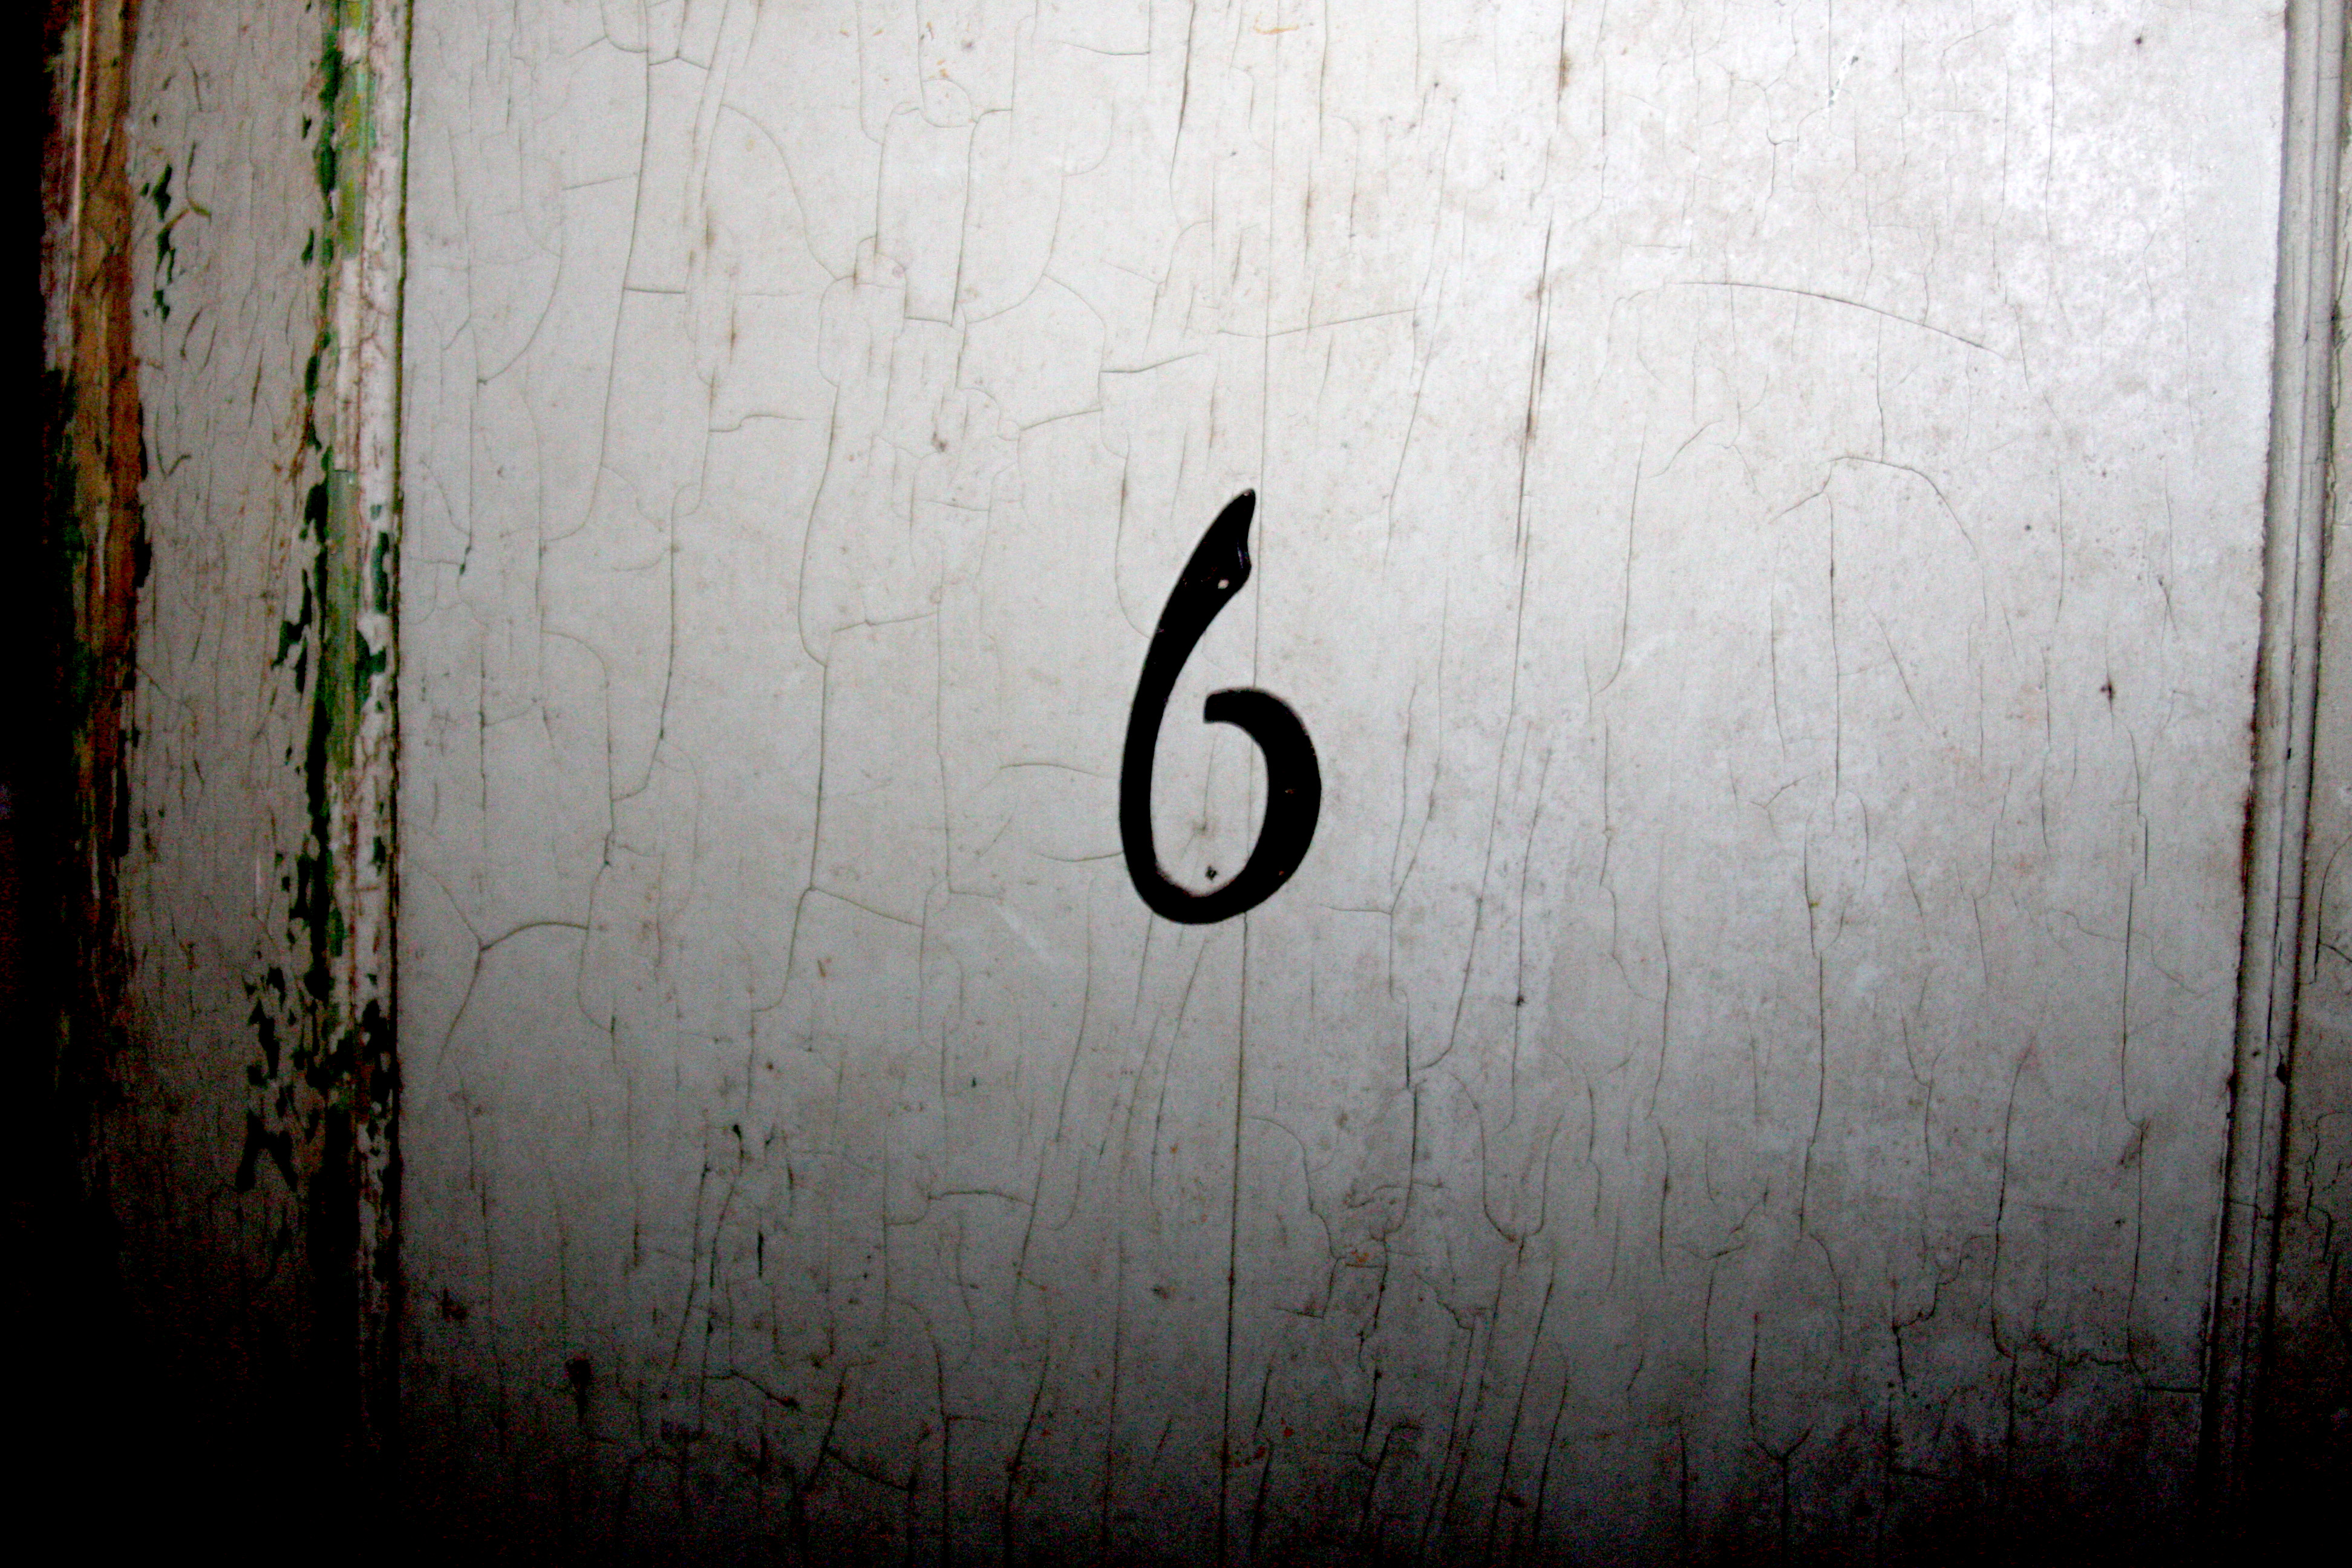 The legendary door number six. (WBEZ/Logan Jaffe)